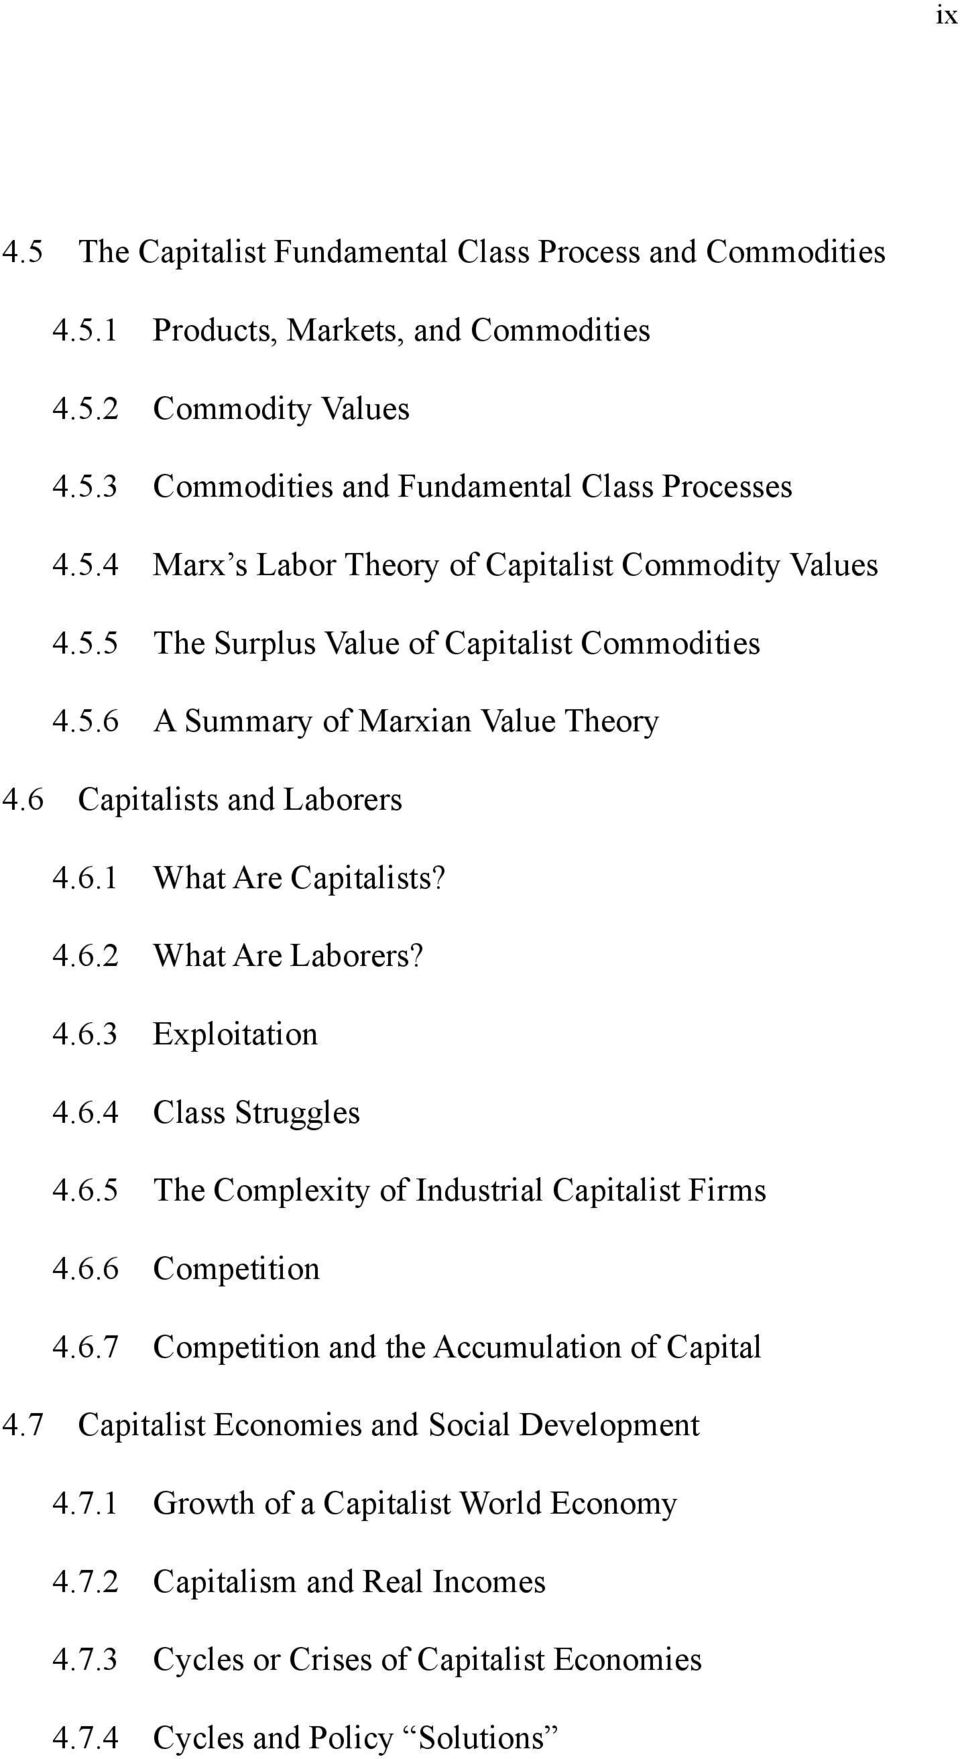 6.5 The Complexity of Industrial Capitalist Firms 4.6.6 Competition 4.6.7 Competition and the Accumulation of Capital 4.7 Capitalist Economies and Social Development 4.7.1 Growth of a Capitalist World Economy 4.